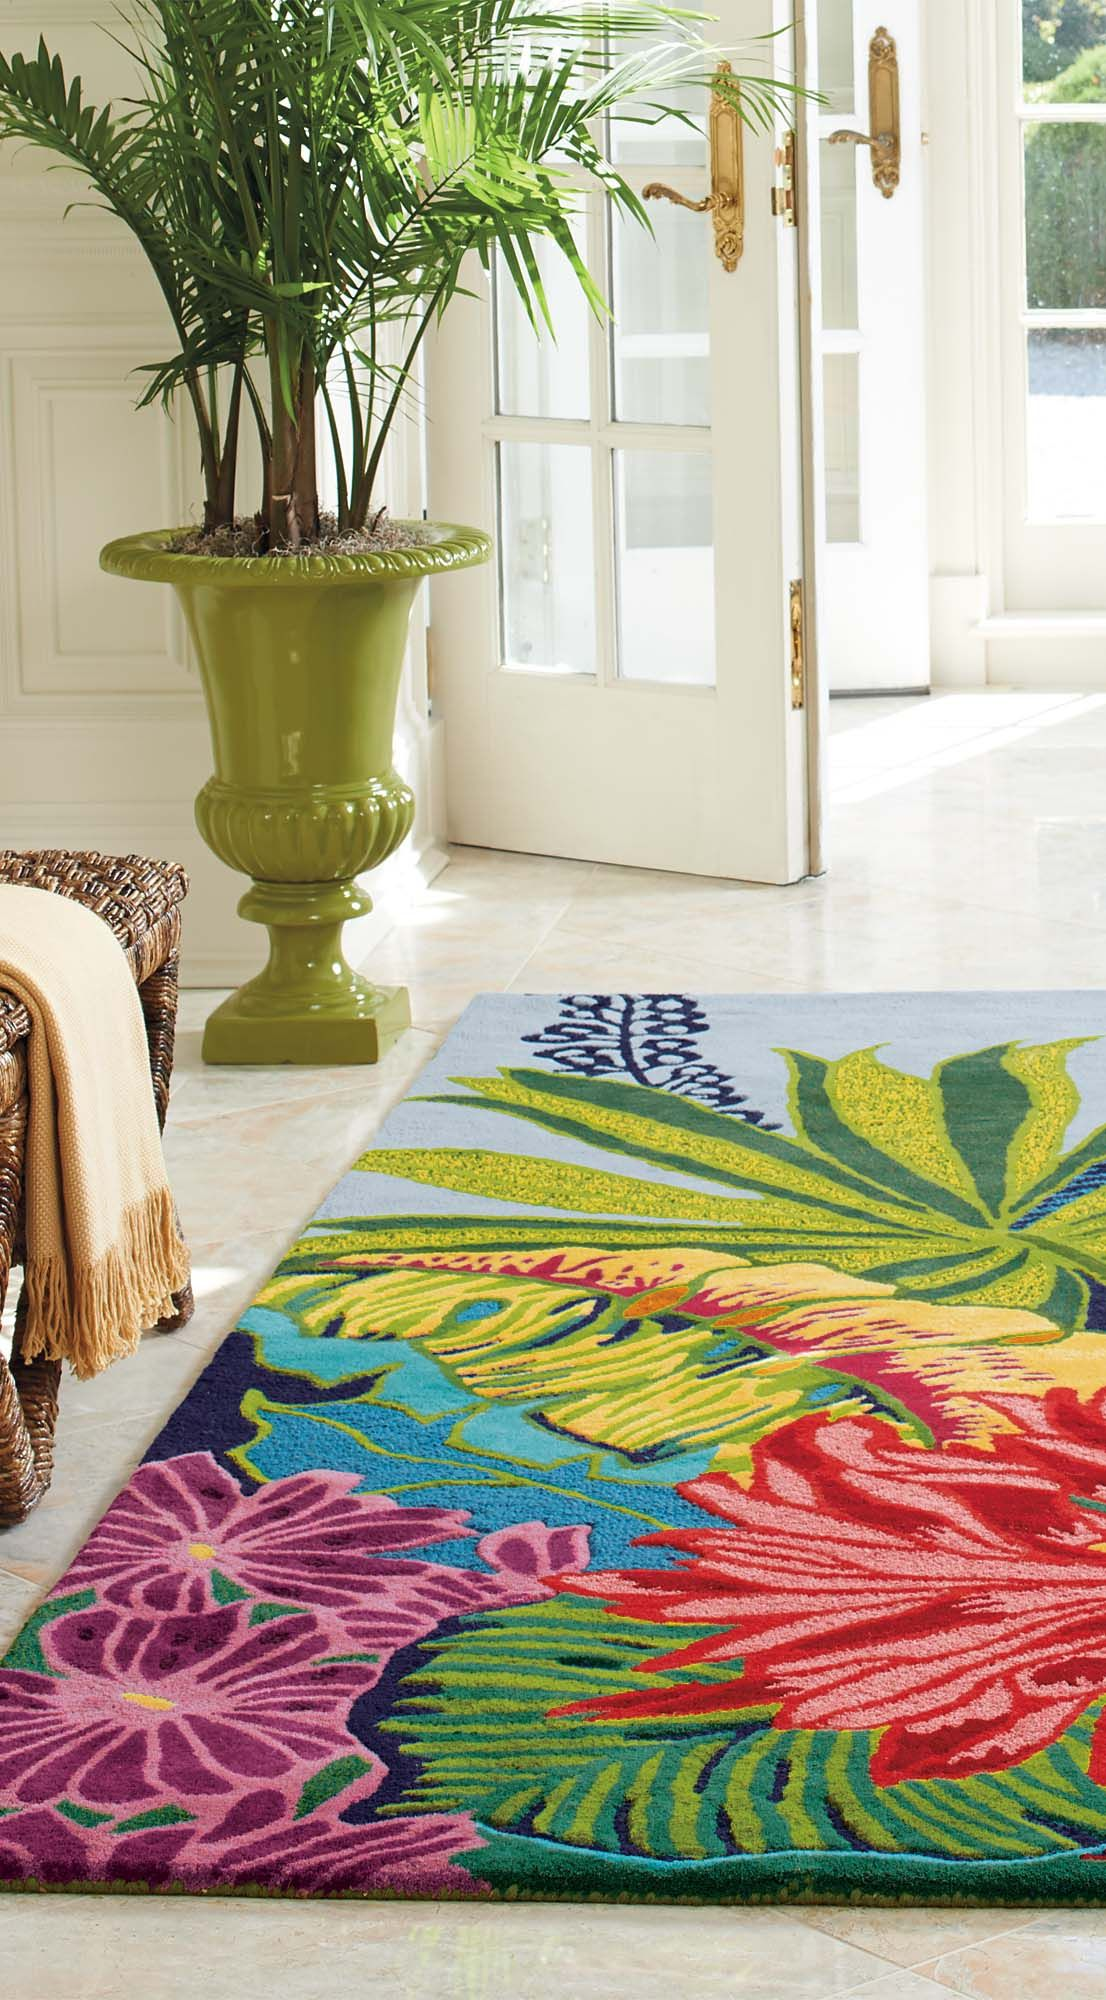 Love Is Afoot Inspired By Tropical Foliage And Flowers